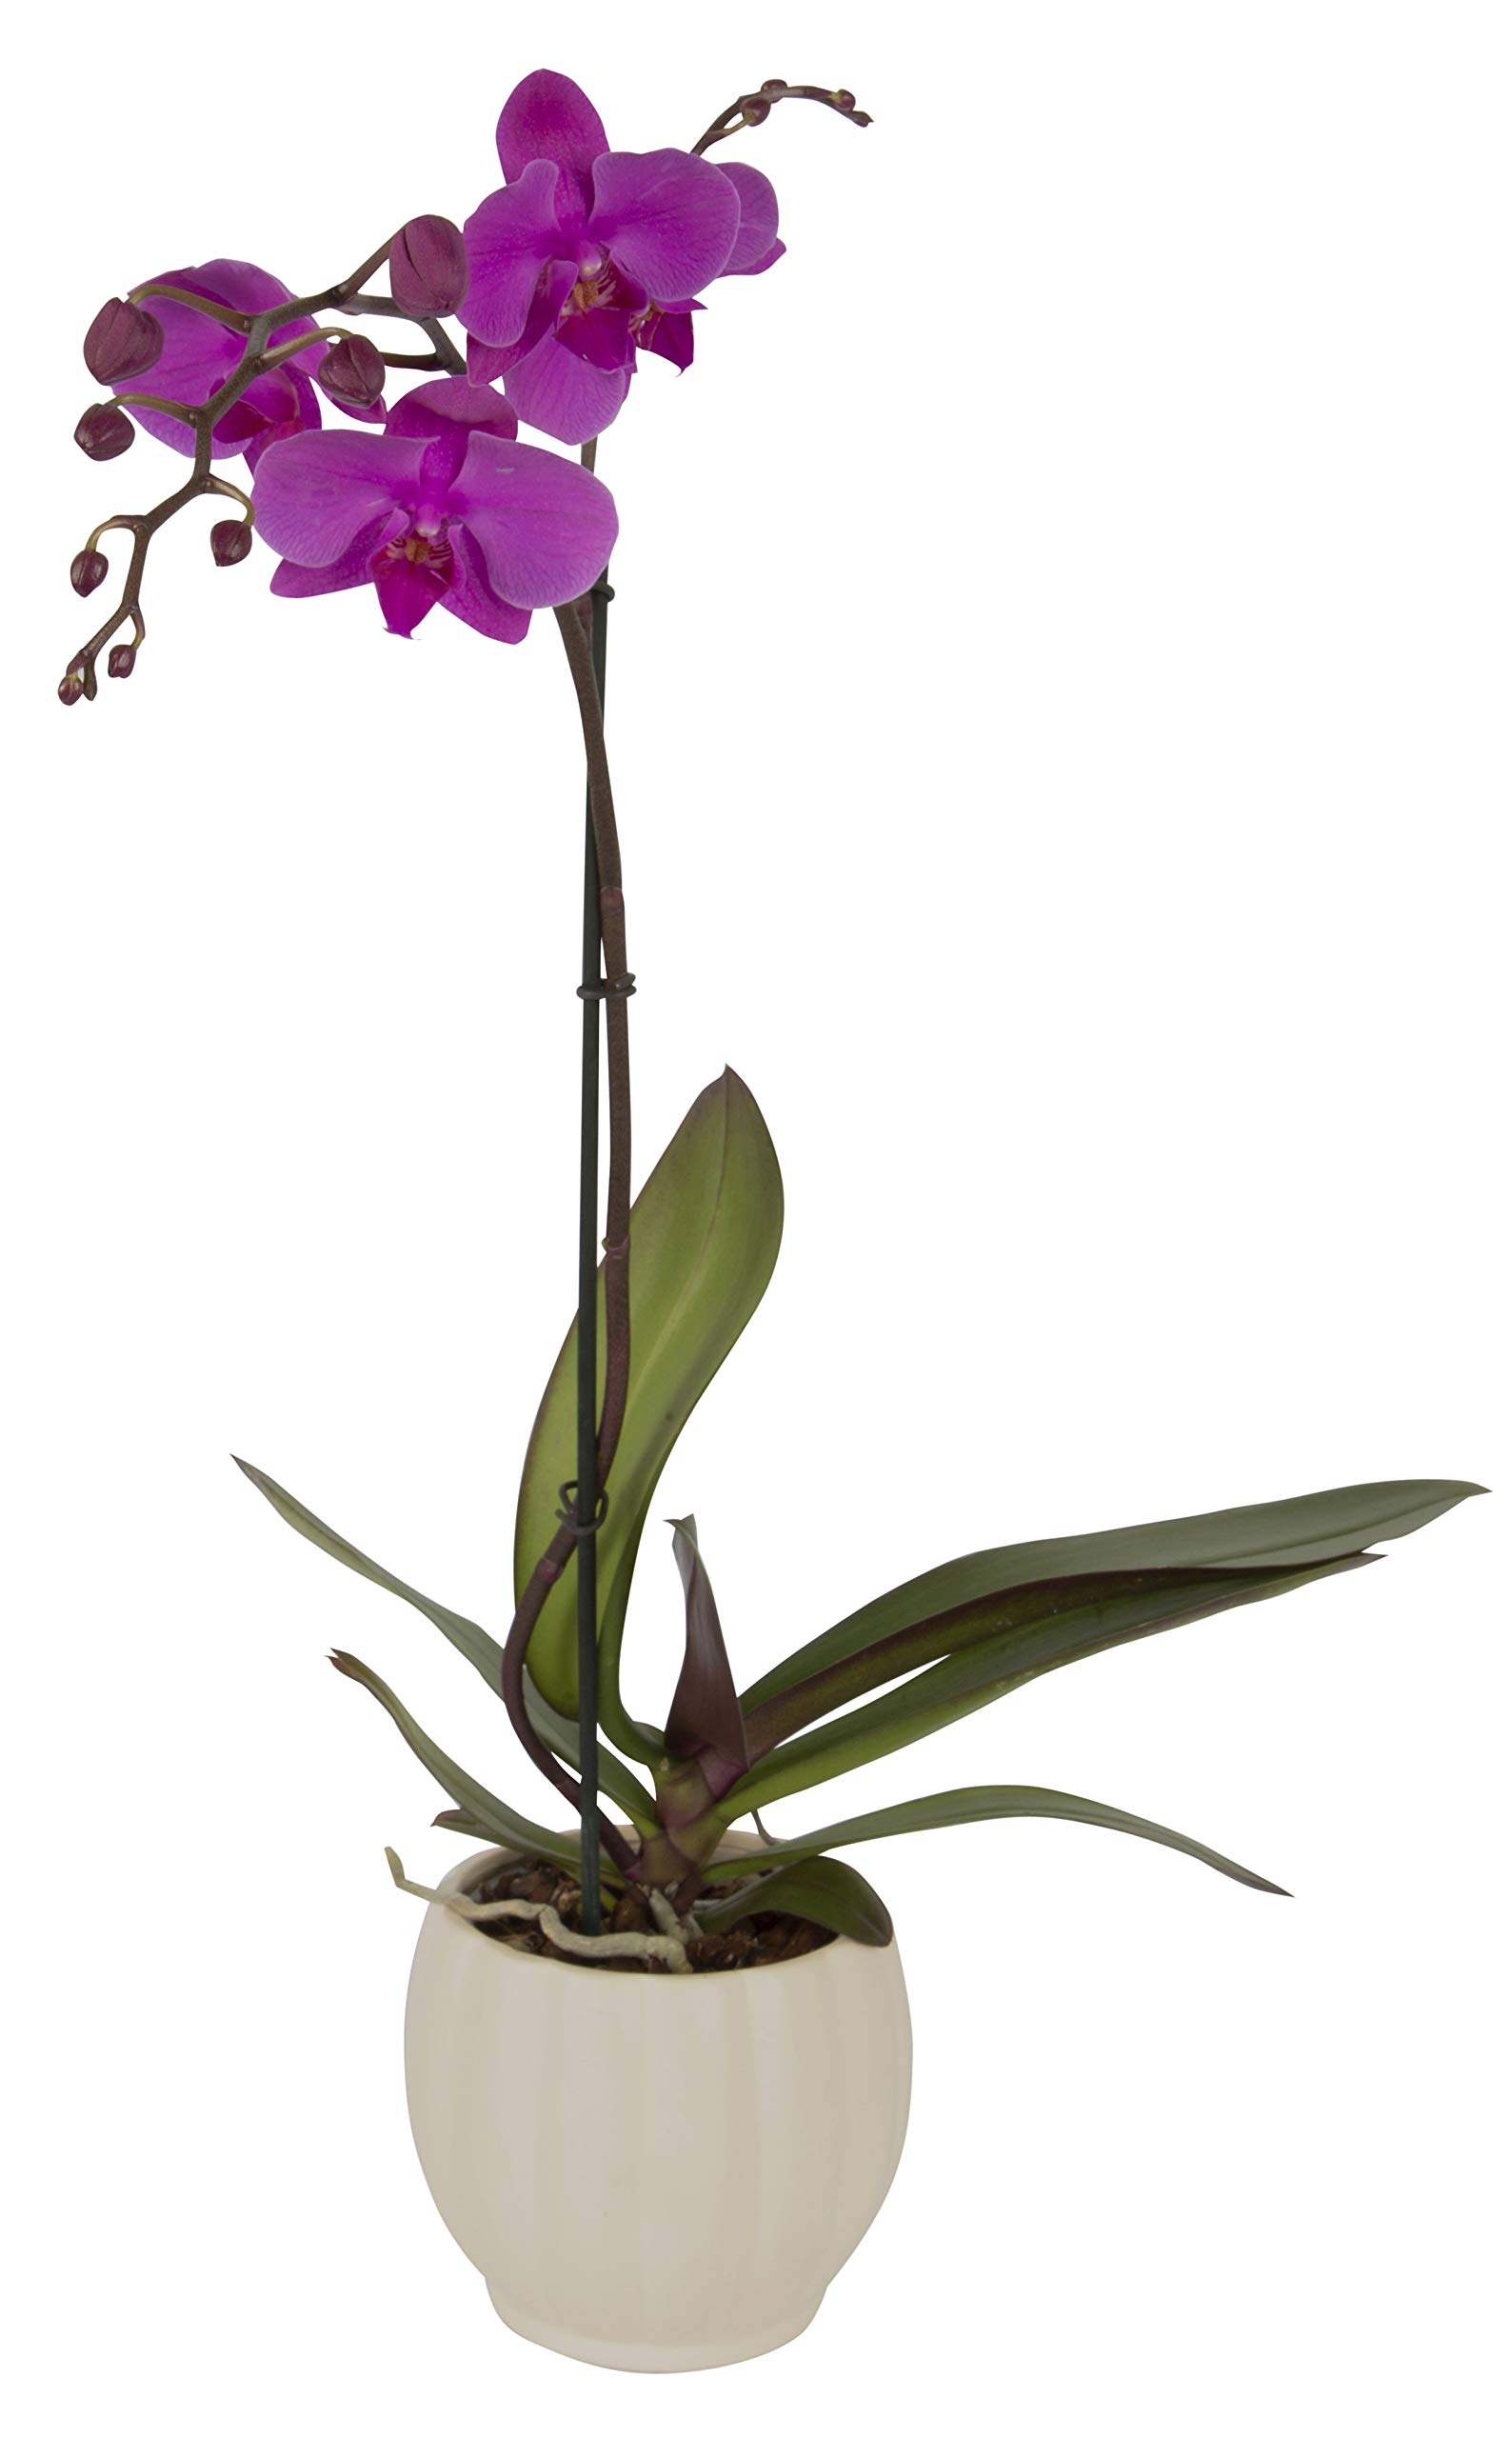 Color Orchids Live Blooming Single Stem Phalaenopsis Orchid Plant in Ceramic Pot, 20'' - 24'' Tall Purple by Color Orchids